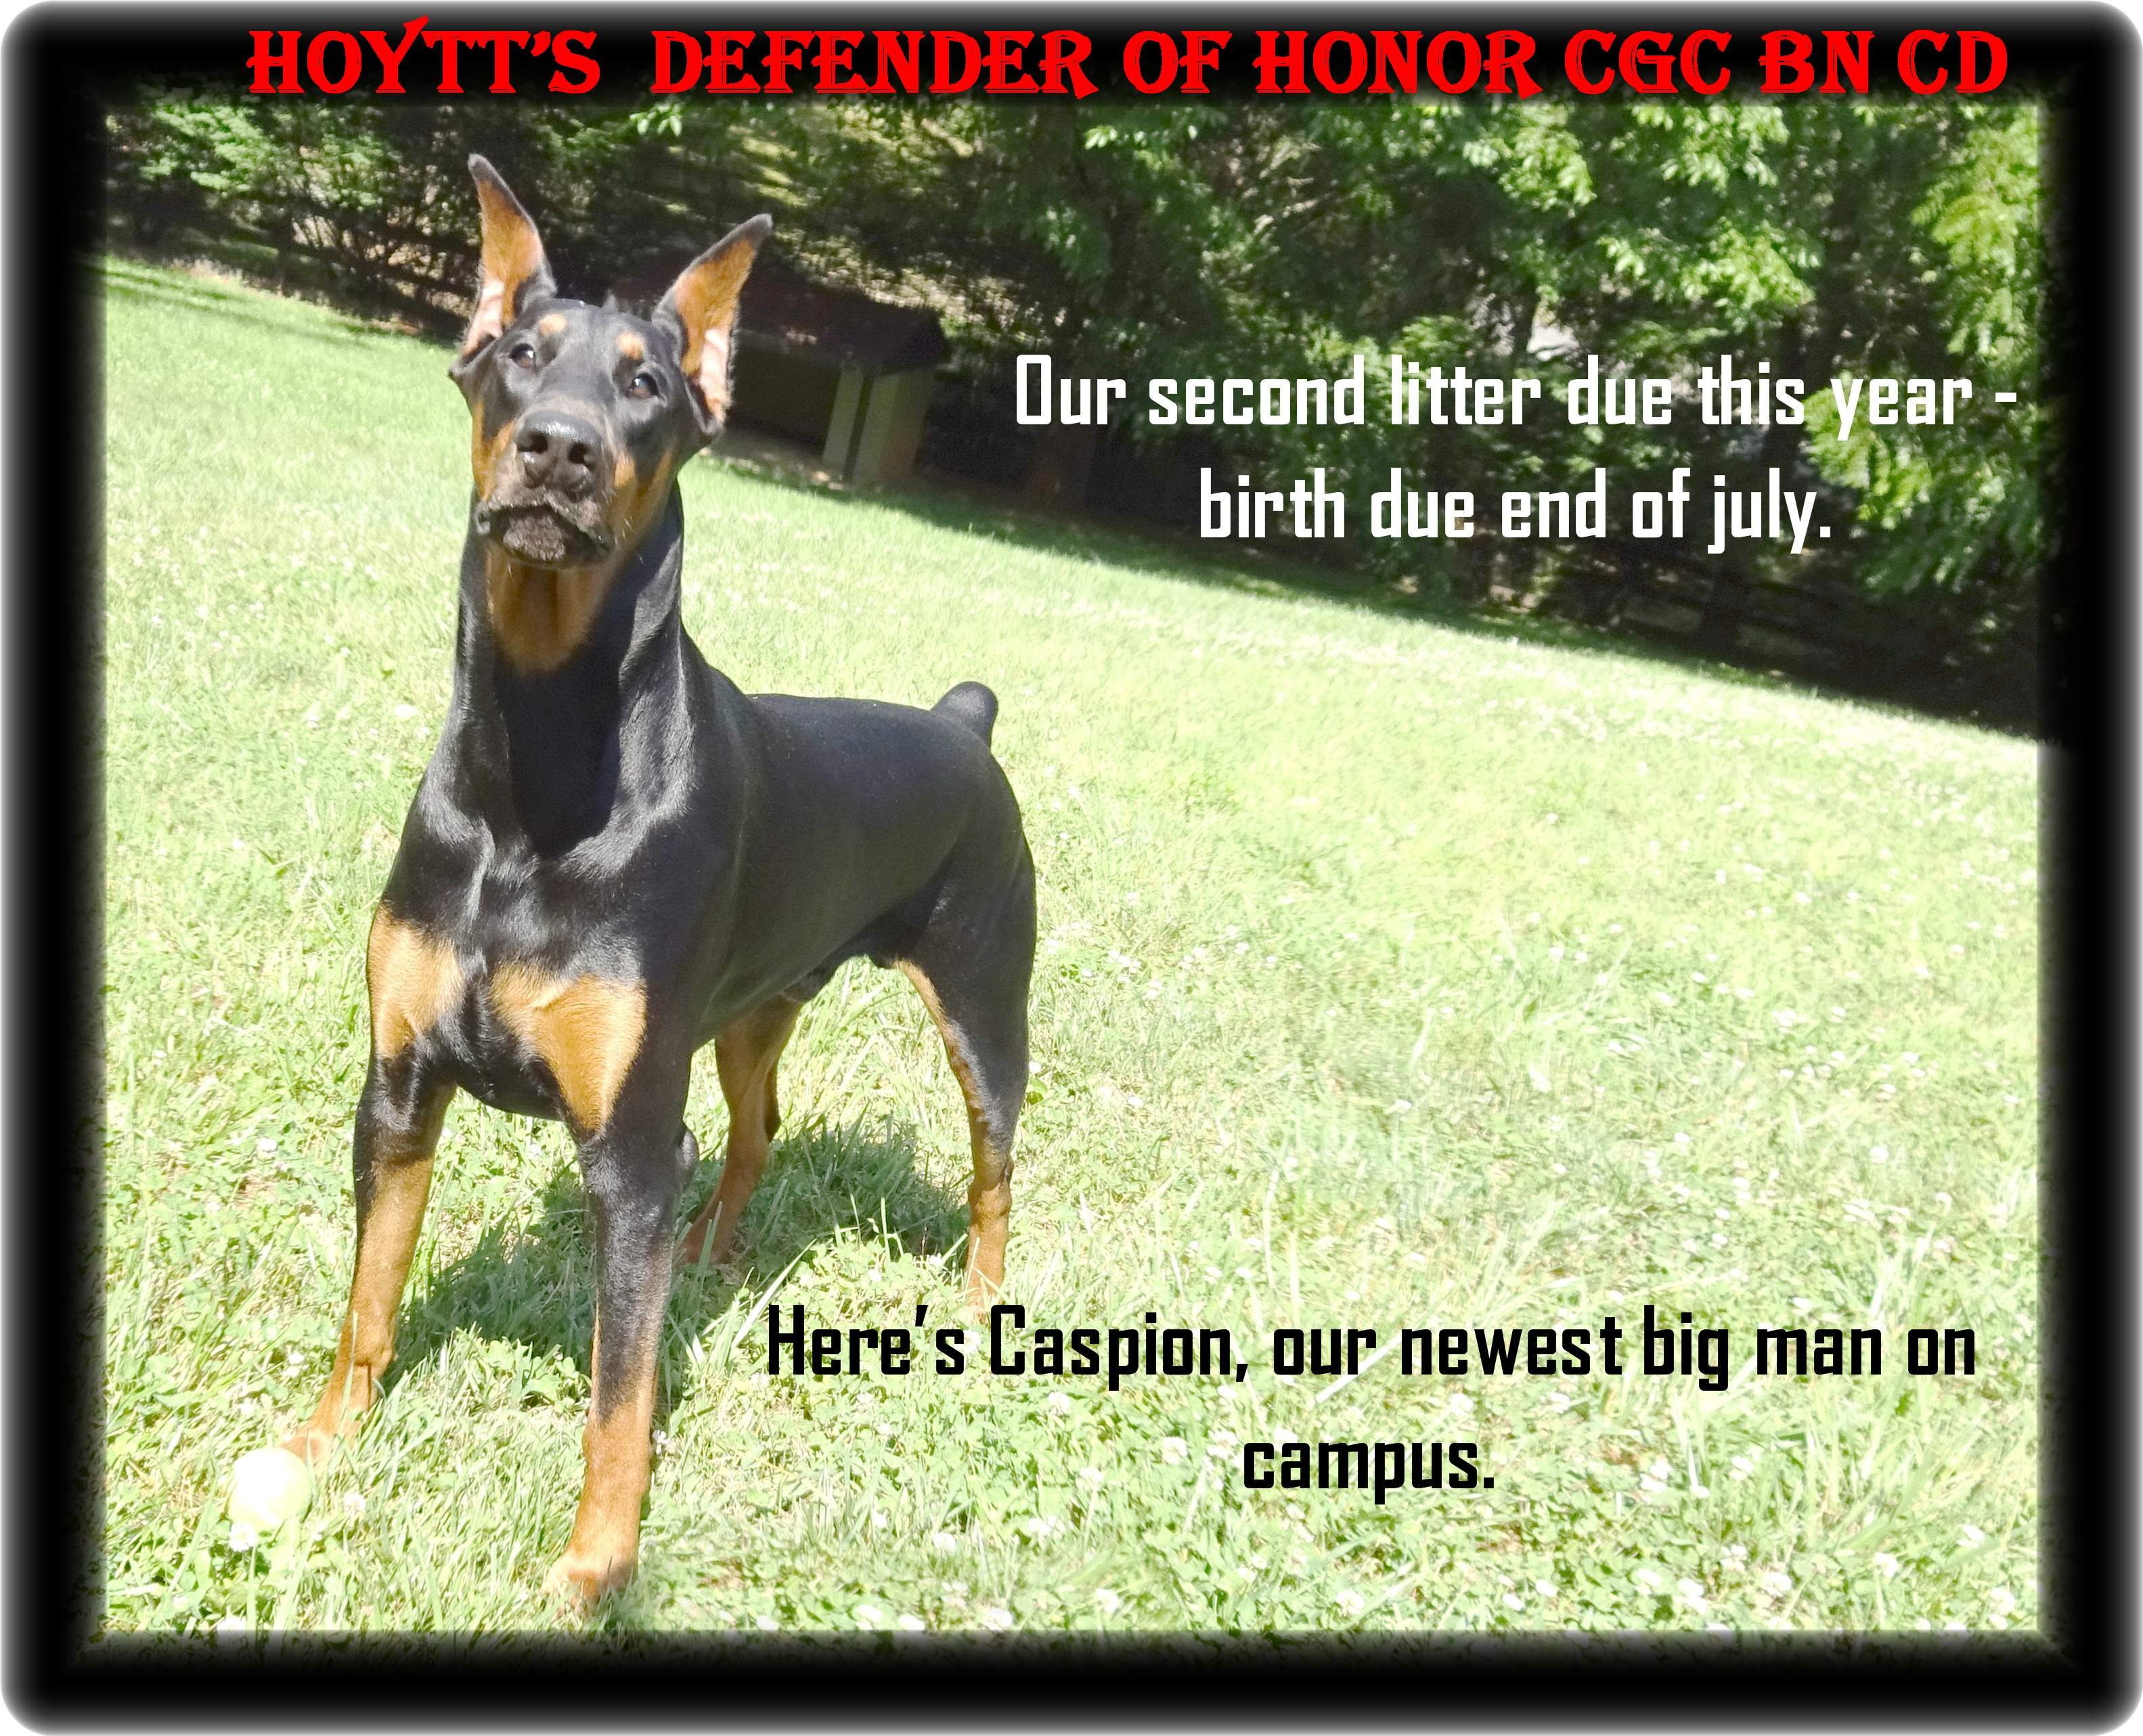 Caspian - Presidents Choice  - formally Hoytts Defender of Honor BN CD CGC TDI/  Mr. Hoytt's  next generations boy and second in command to  his London. see his early training video at the end of his photos